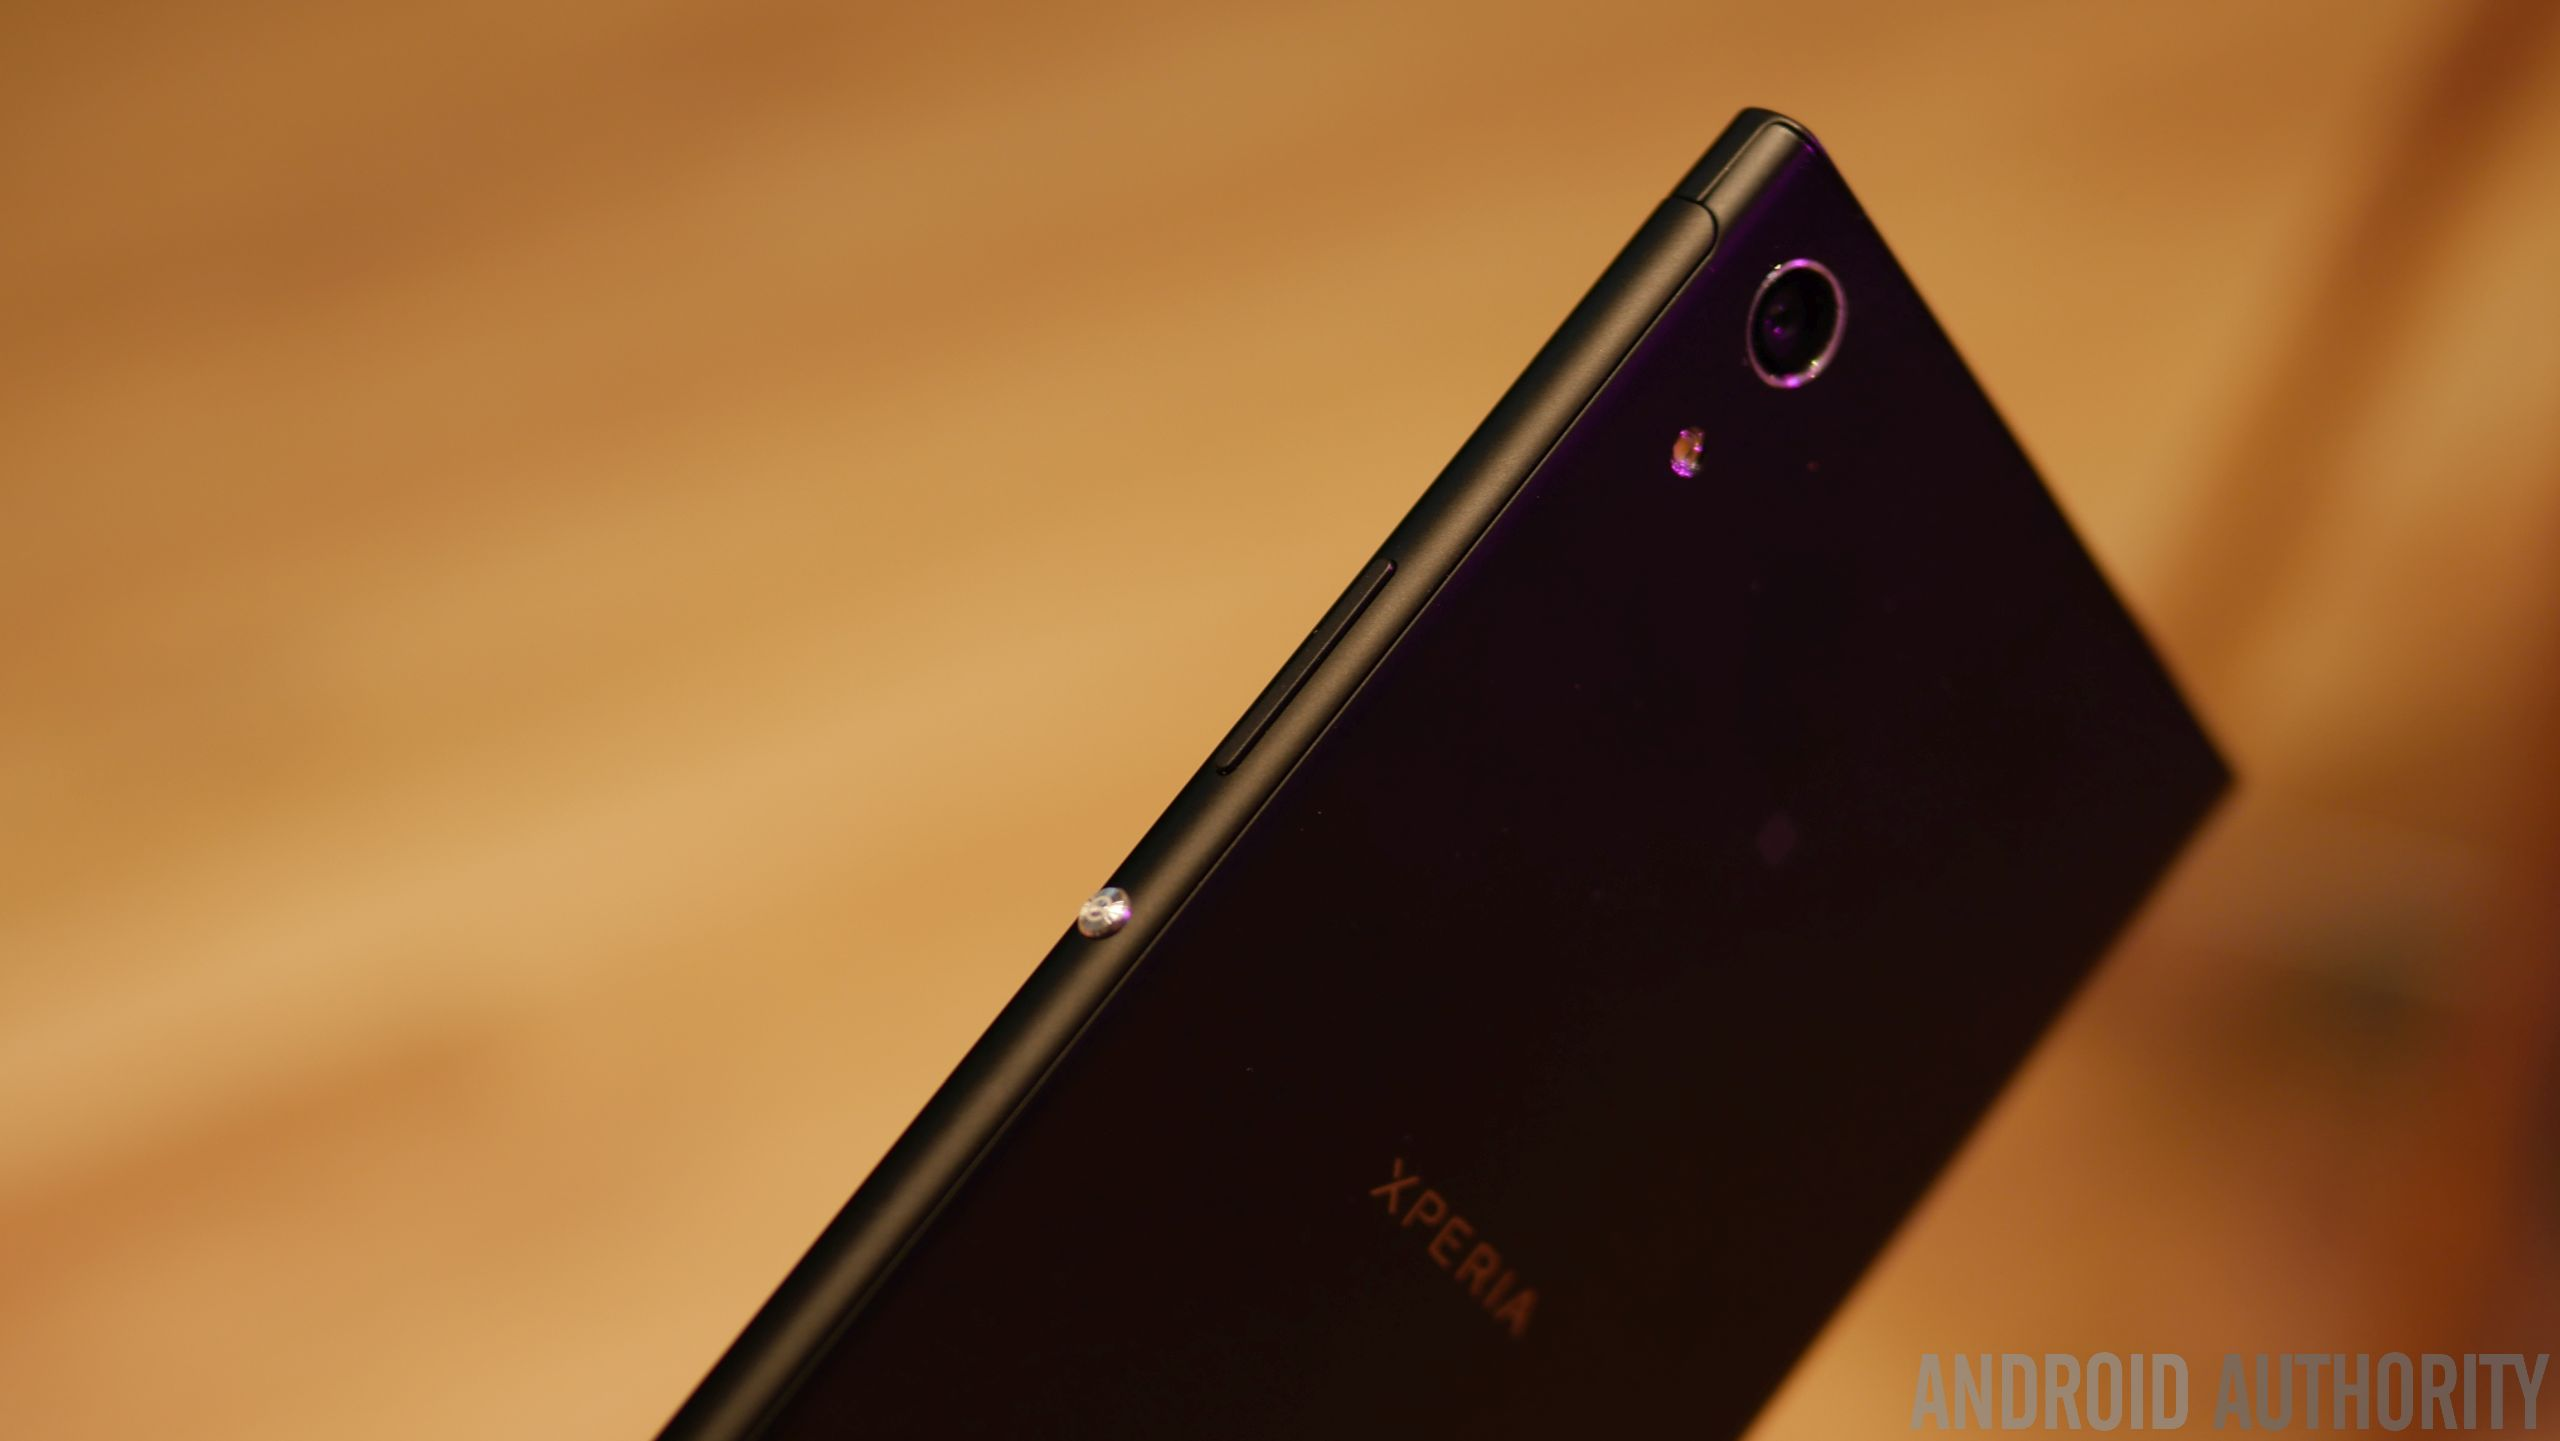 Sony xperia xa1 and xa1 ultra hands on android authority -  Xa1 Line Seem To Hinge Mostly On Their Cameras Especially Under Low Light Conditions Which Is An Area Where Few Phones Excel In So It Ll Be